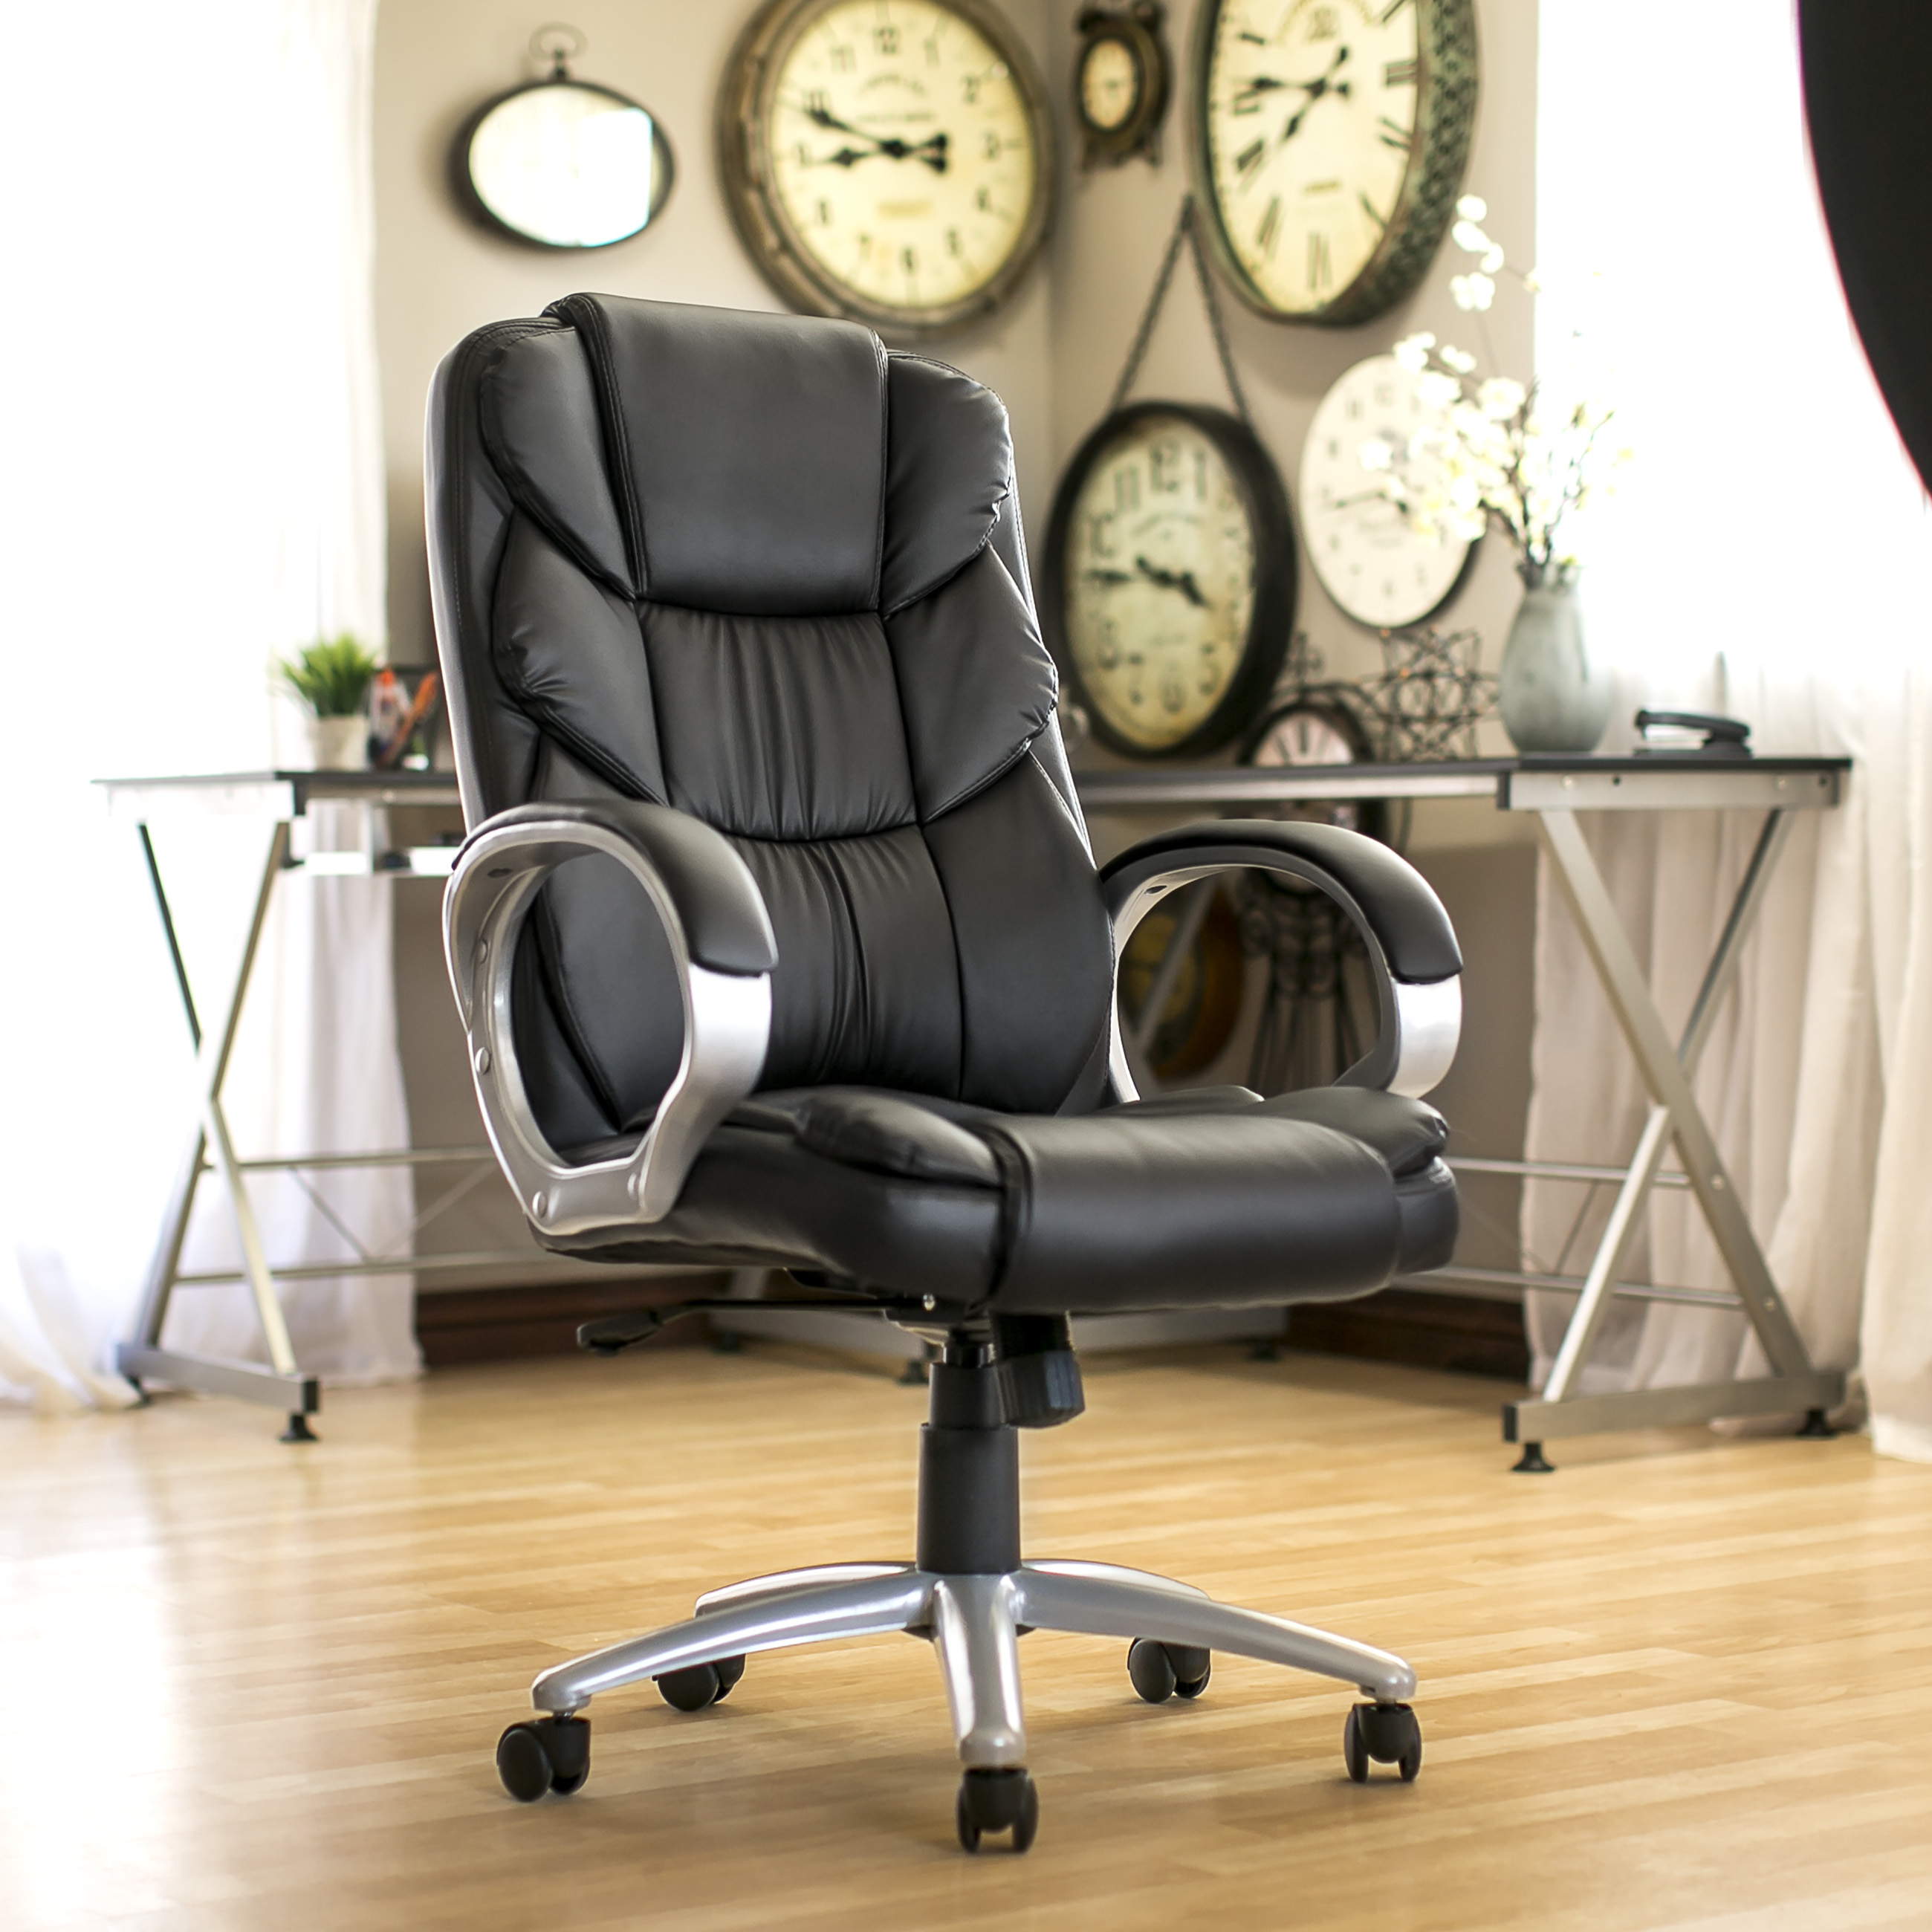 Ergonomic PU Leather High Back Office Chair, Black